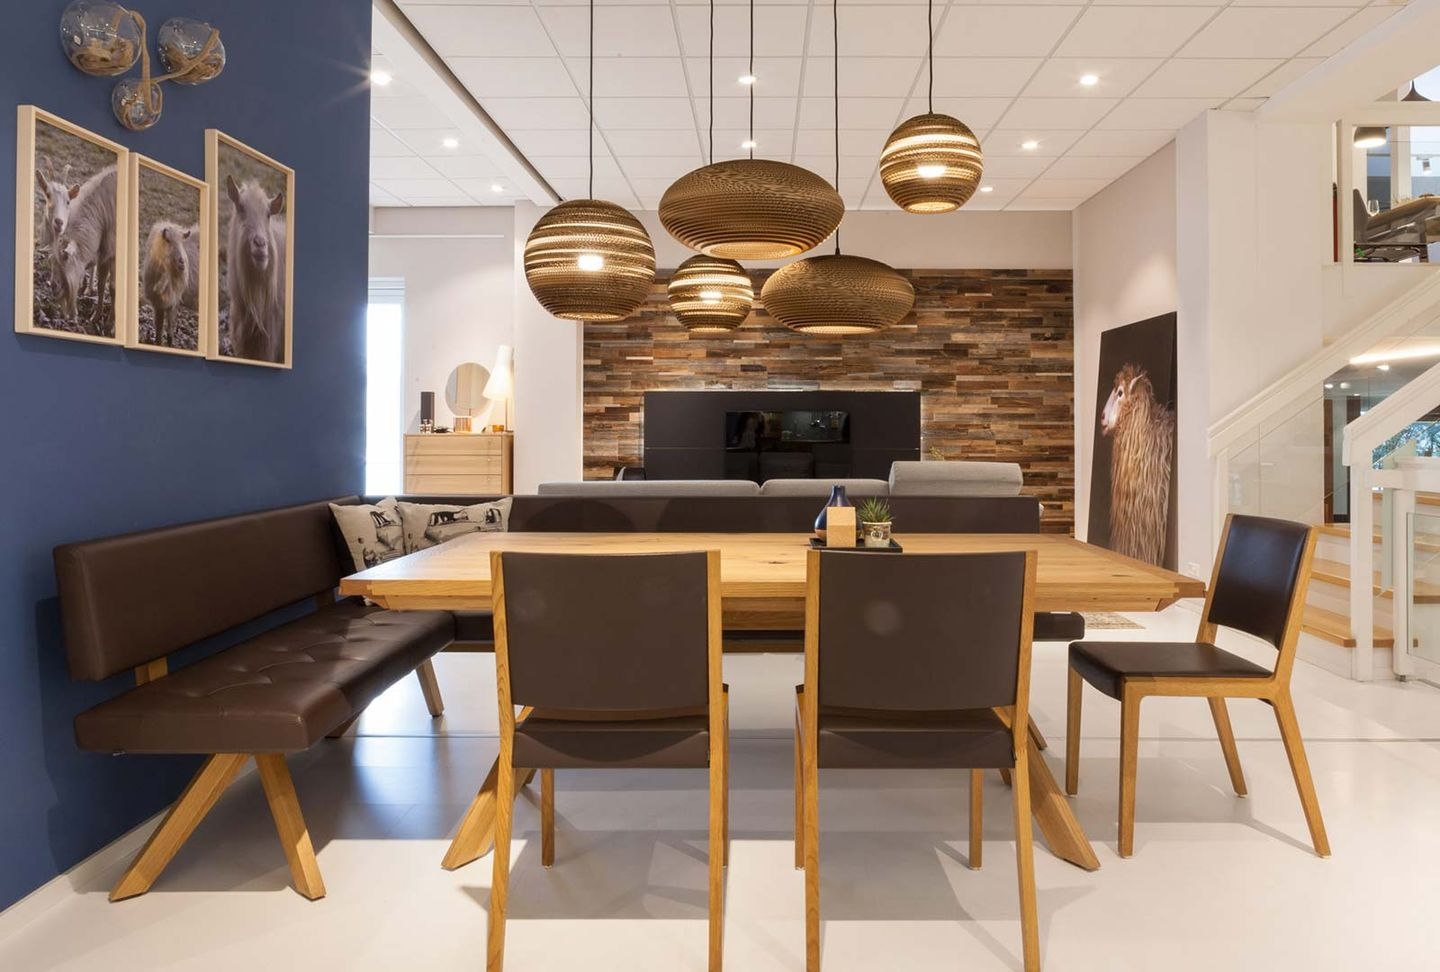 loft dining room group in leather at TEAM 7 store Wels